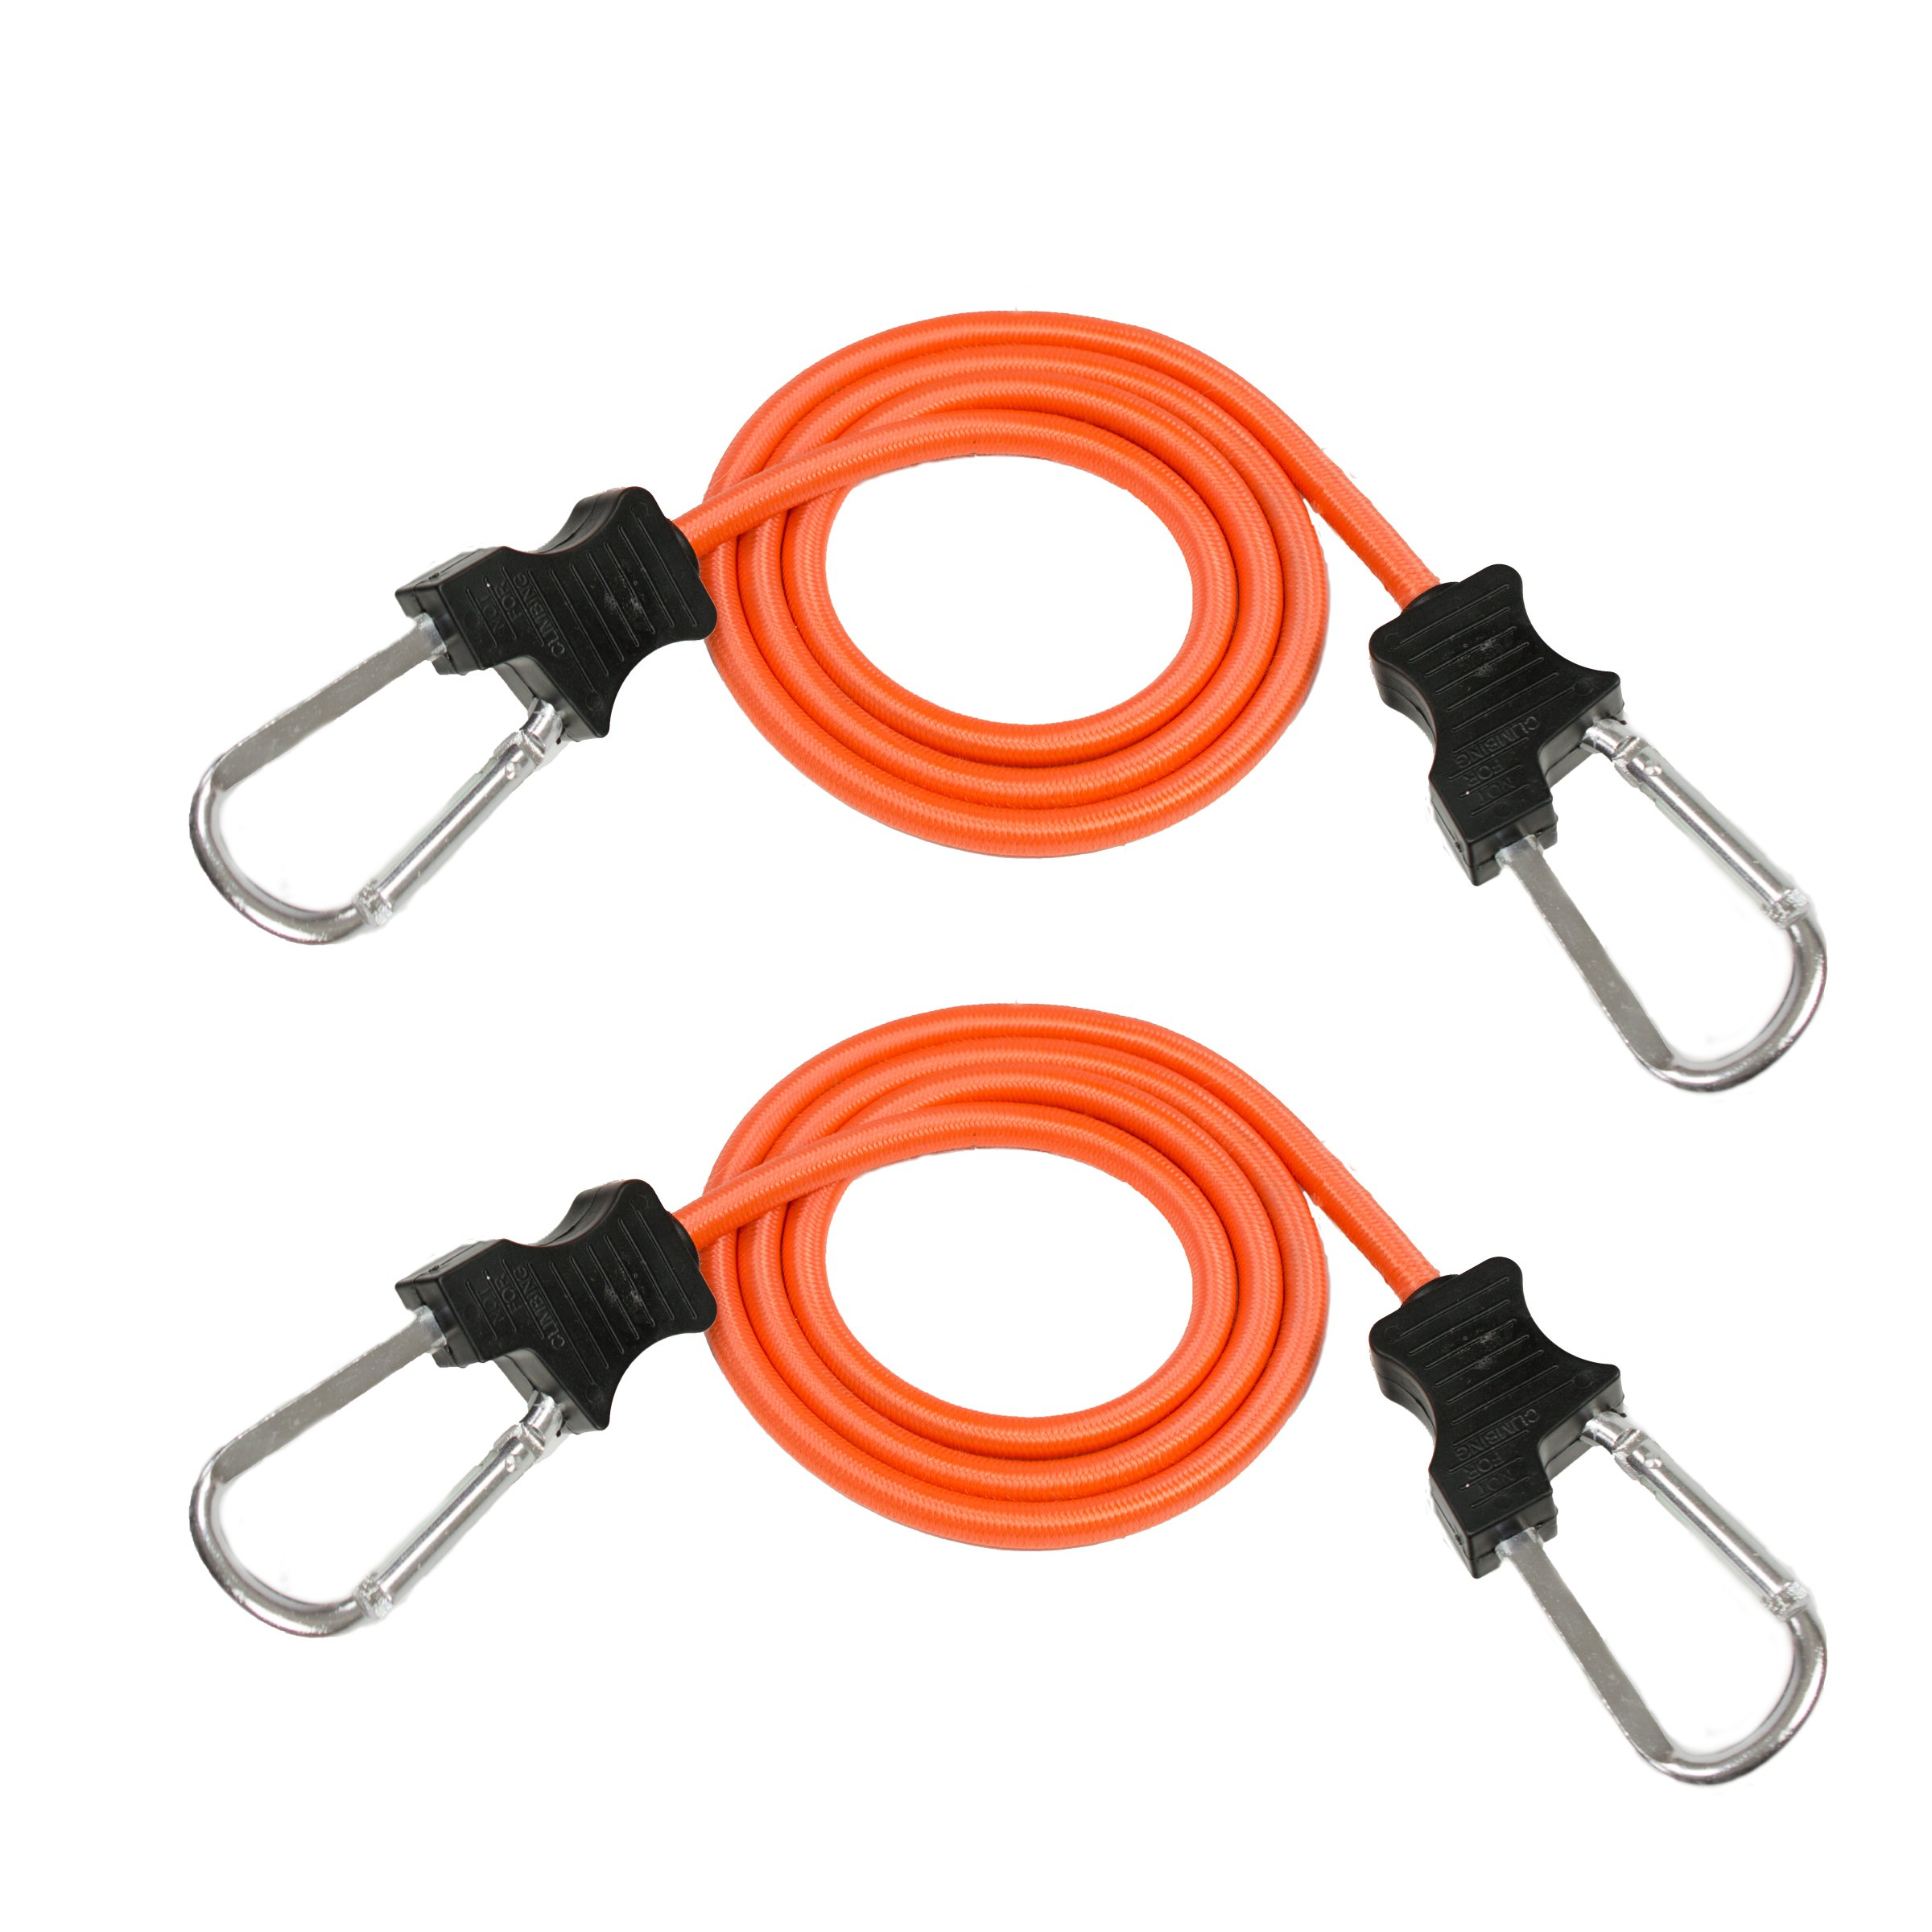 2 pack 48 inch Carabiner Bungee Cords Cargo, Vehicle, Camping, Luggage with Clips